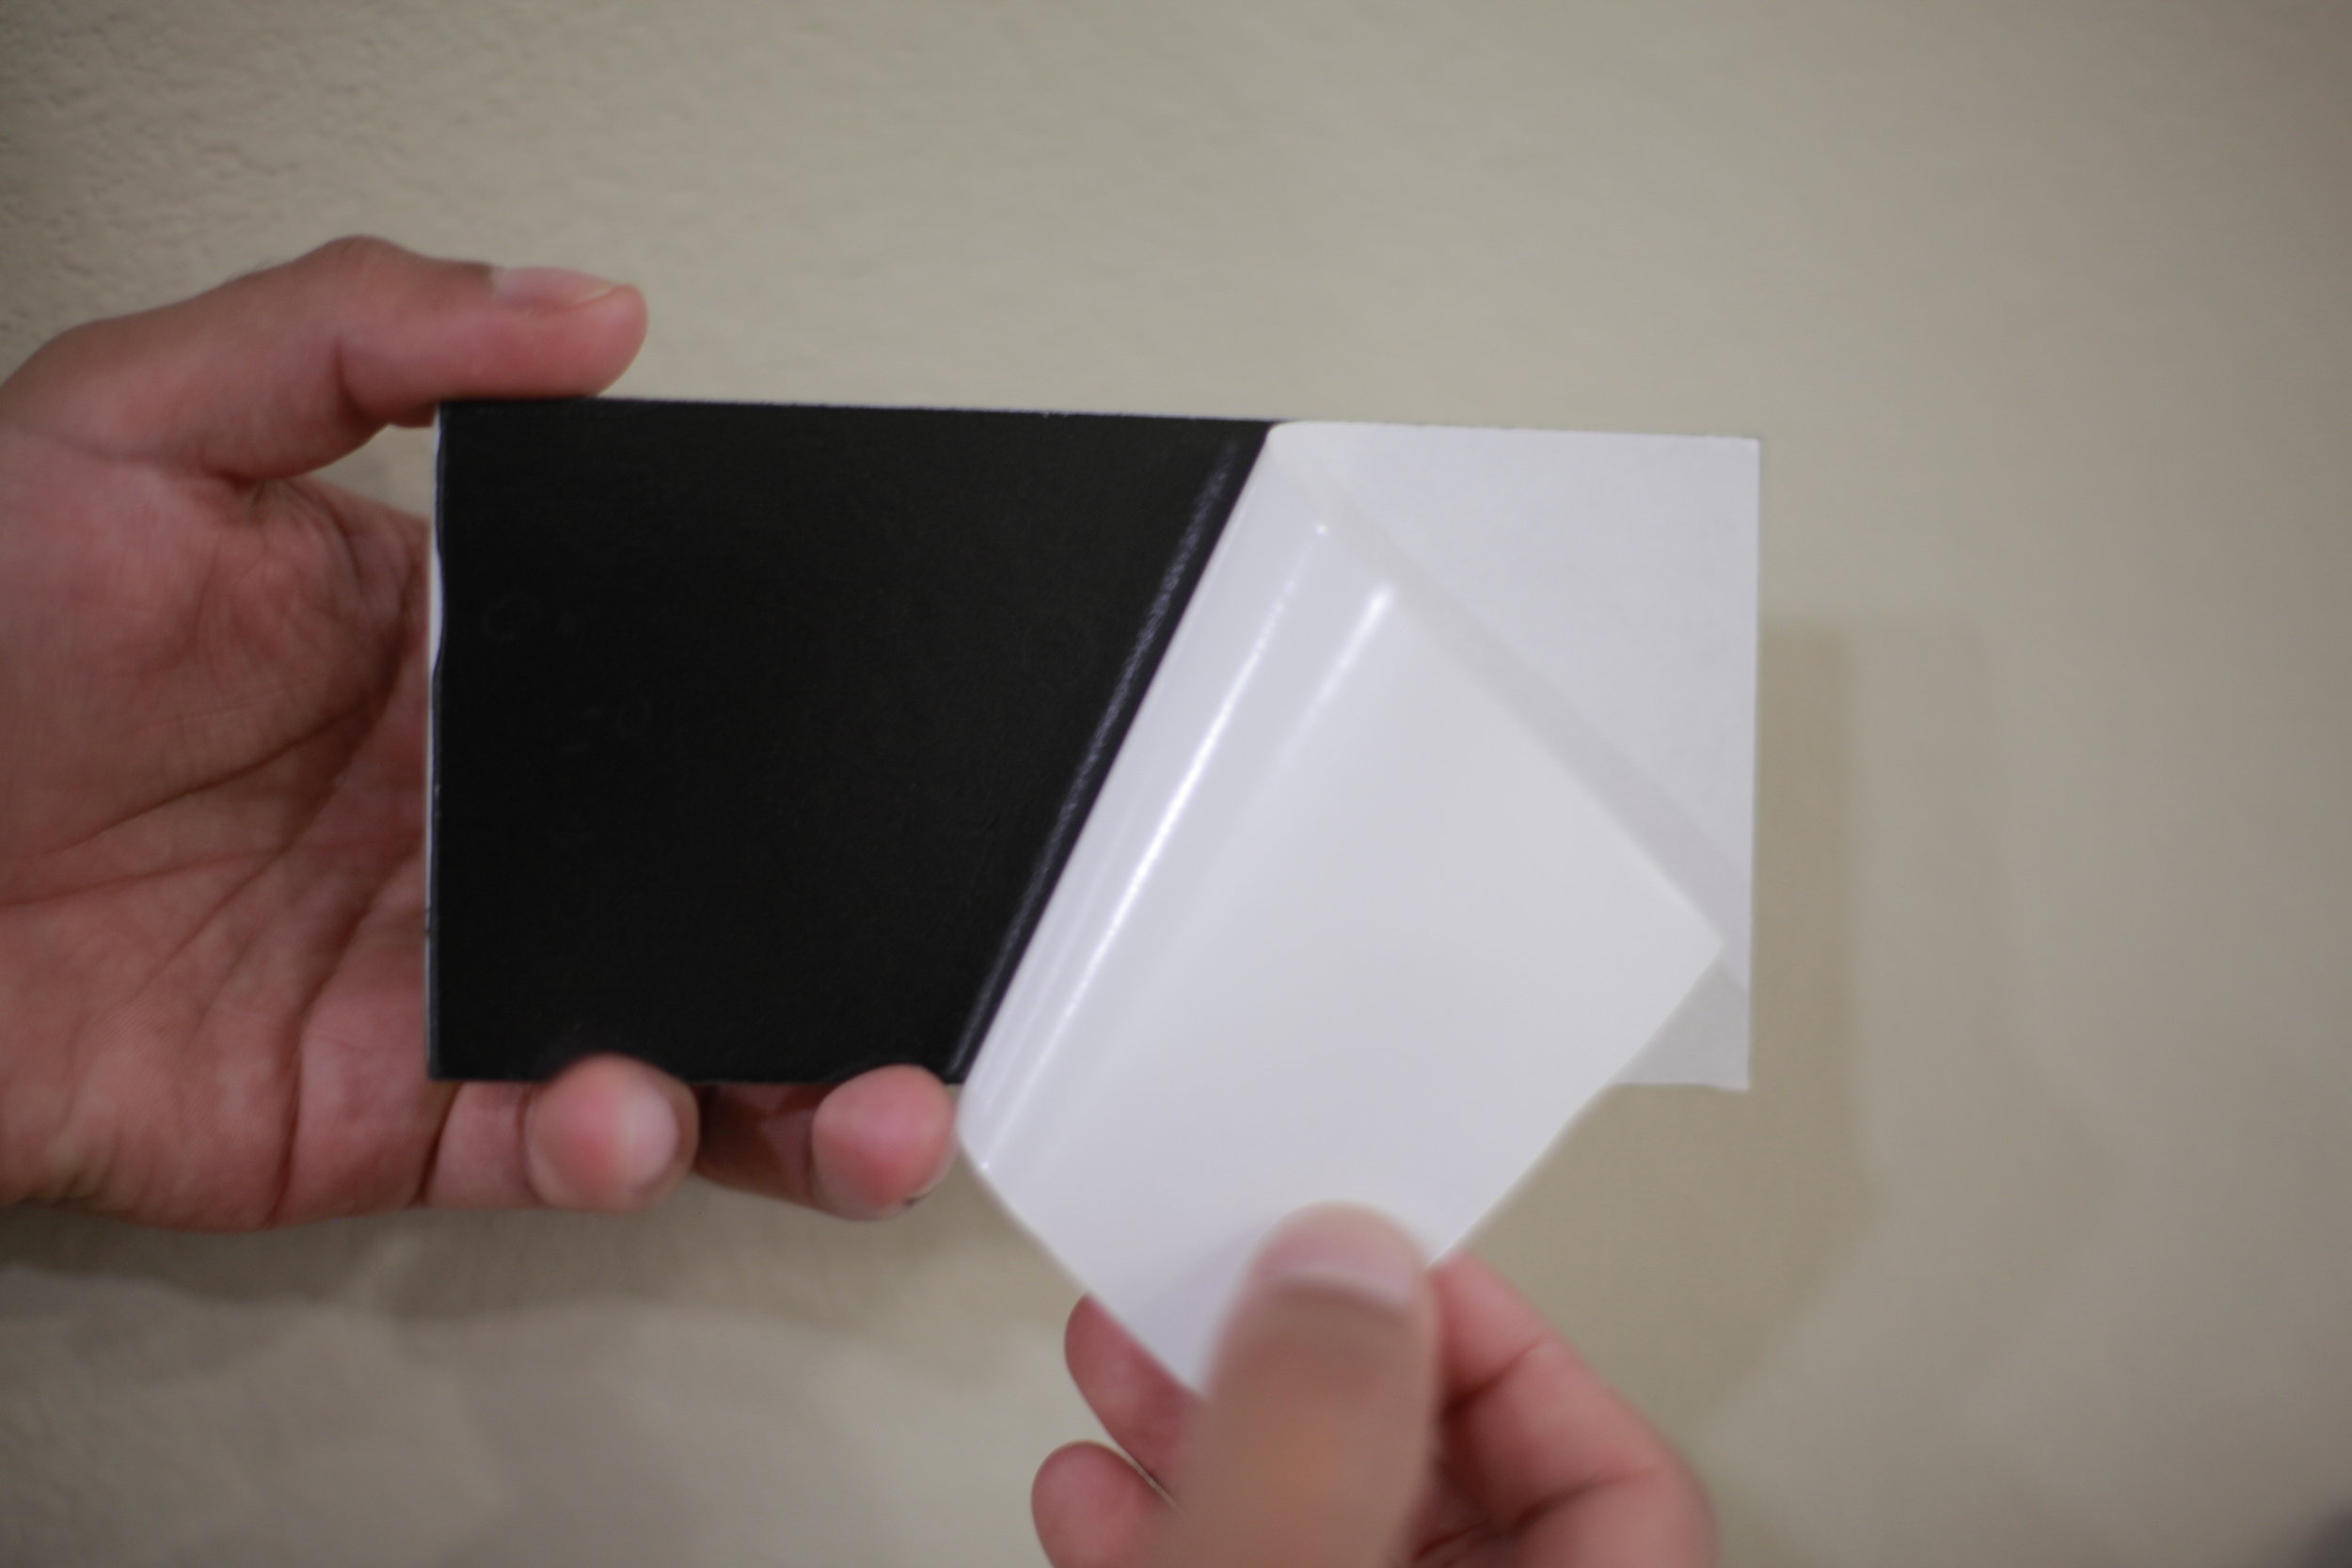 Now you're ready to mount your tiles on the wall. Just peel and stick and don't panic! if you don't like the placement of the tile. Just remove the tile with a putty knife. simple and easy!